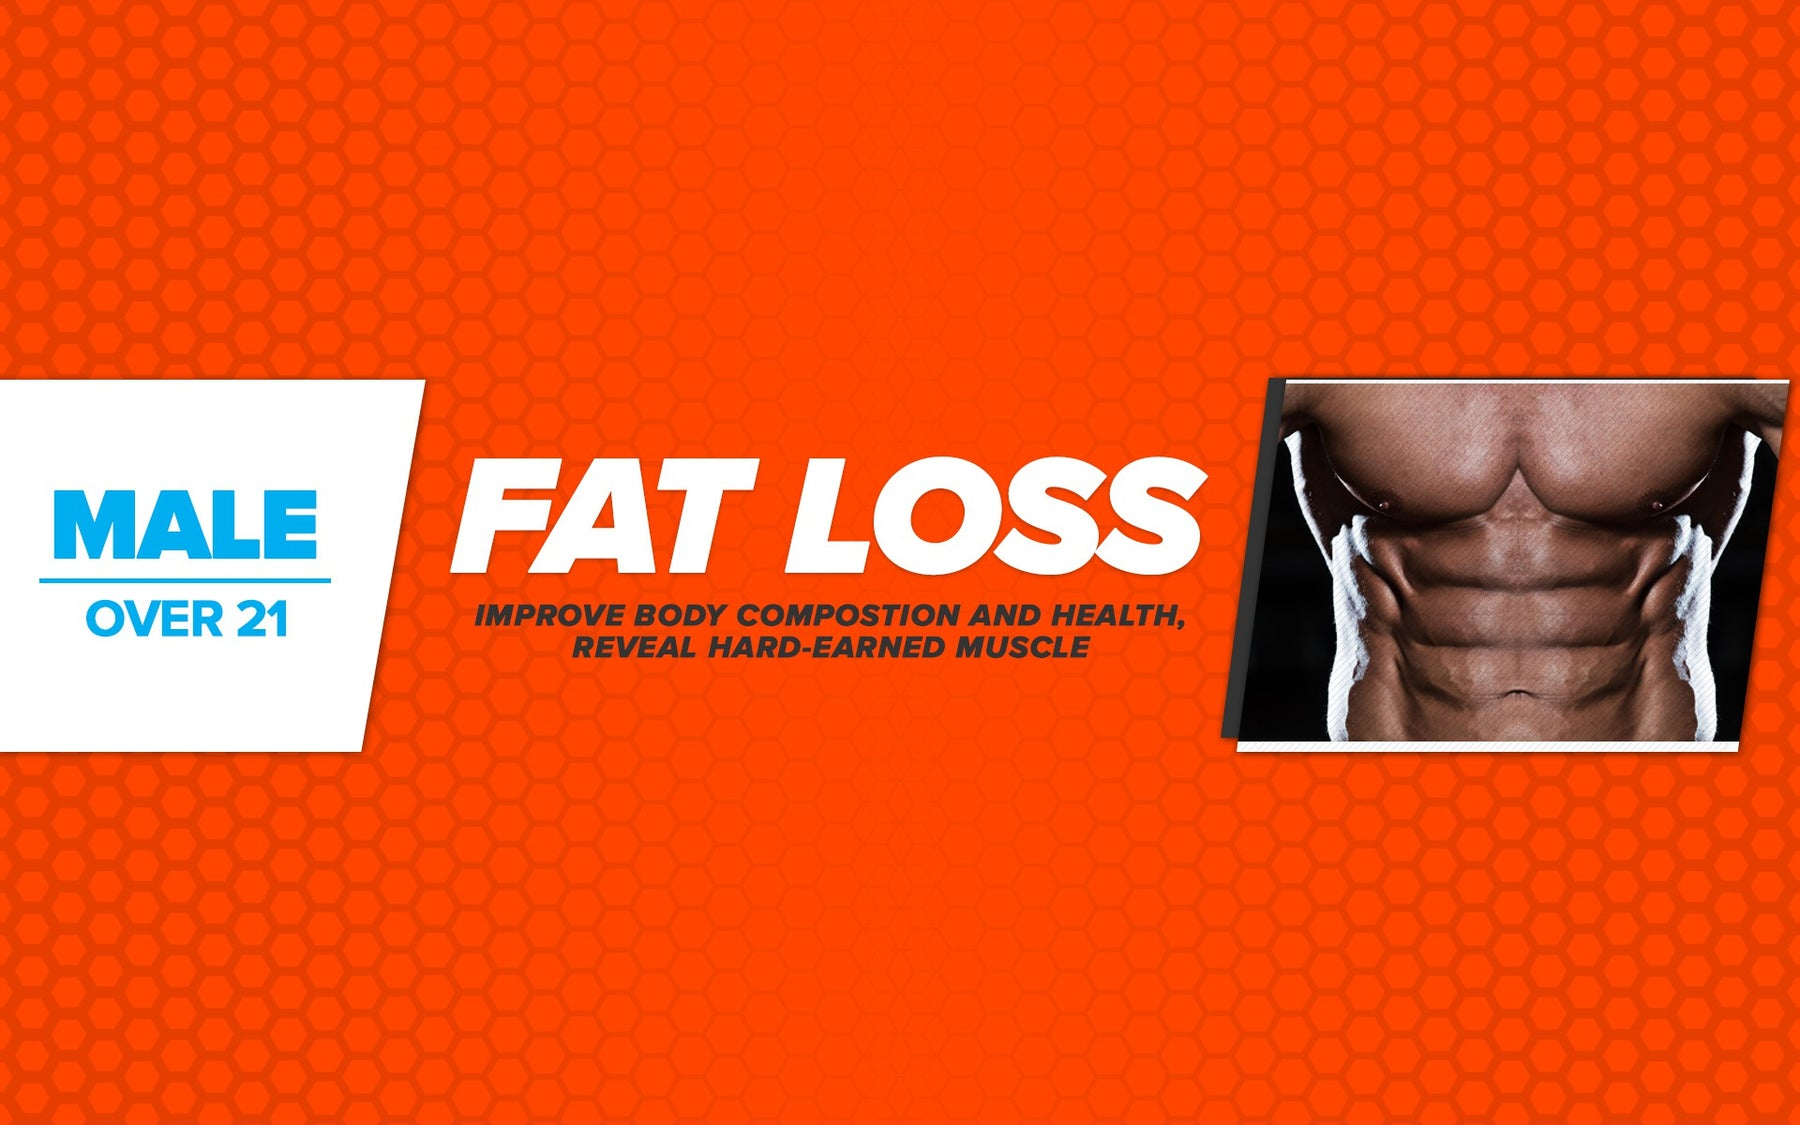 Free Workout Plan - Male - Over 21 - Fat Loss